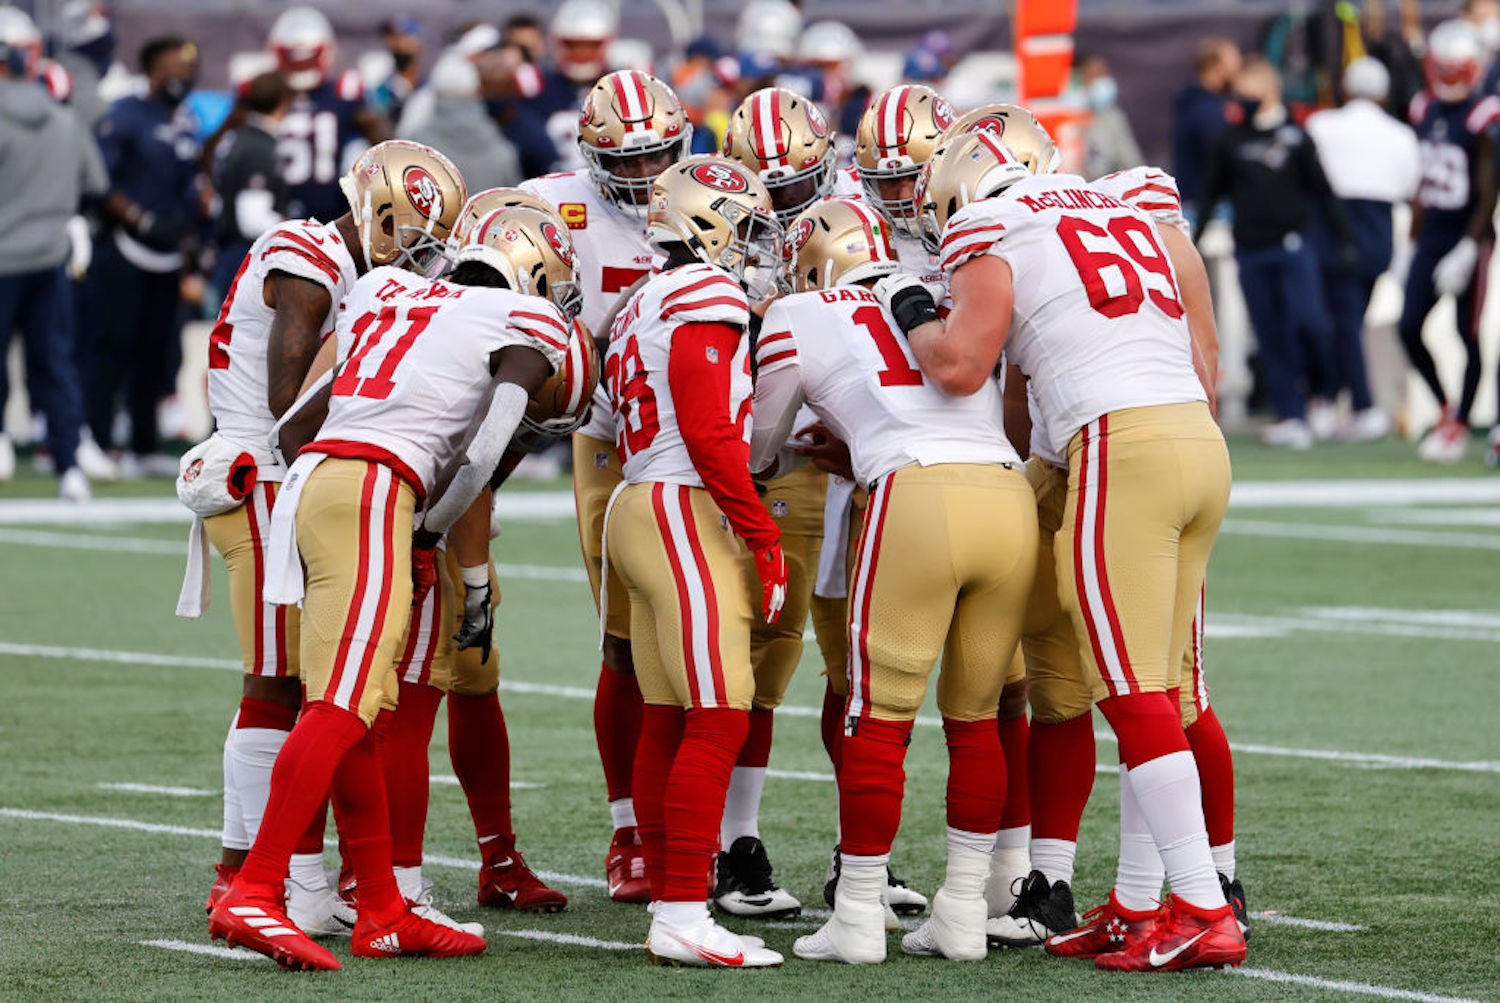 The San Francisco 49ers have been brutalized by injuries and COVID-19 this season. Who will even be suiting up against the Packers tonight?